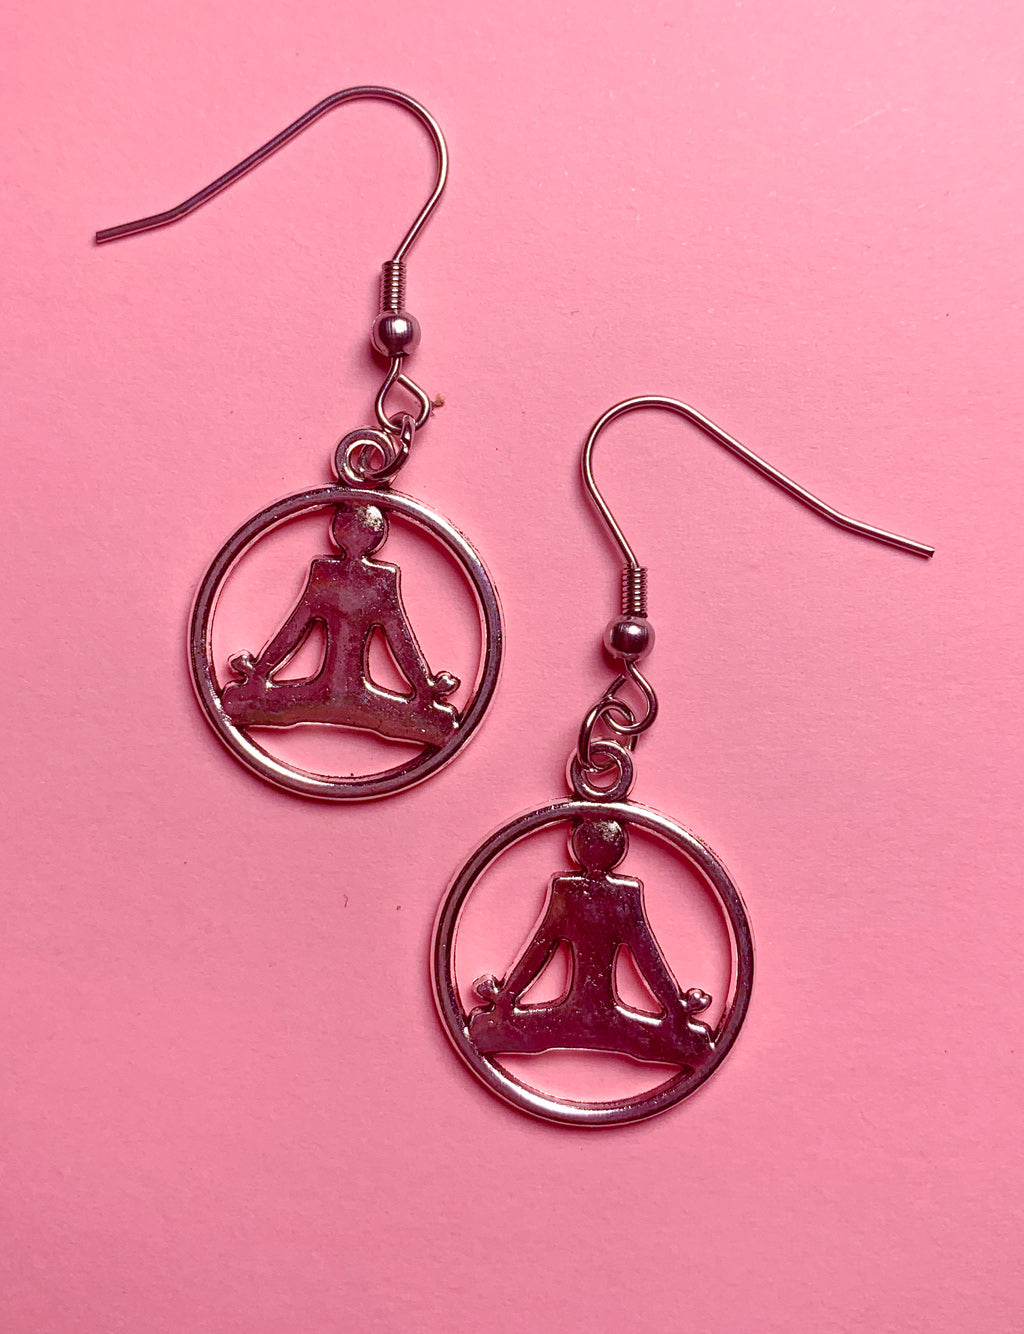 YOGA PENDANT EARRINGS